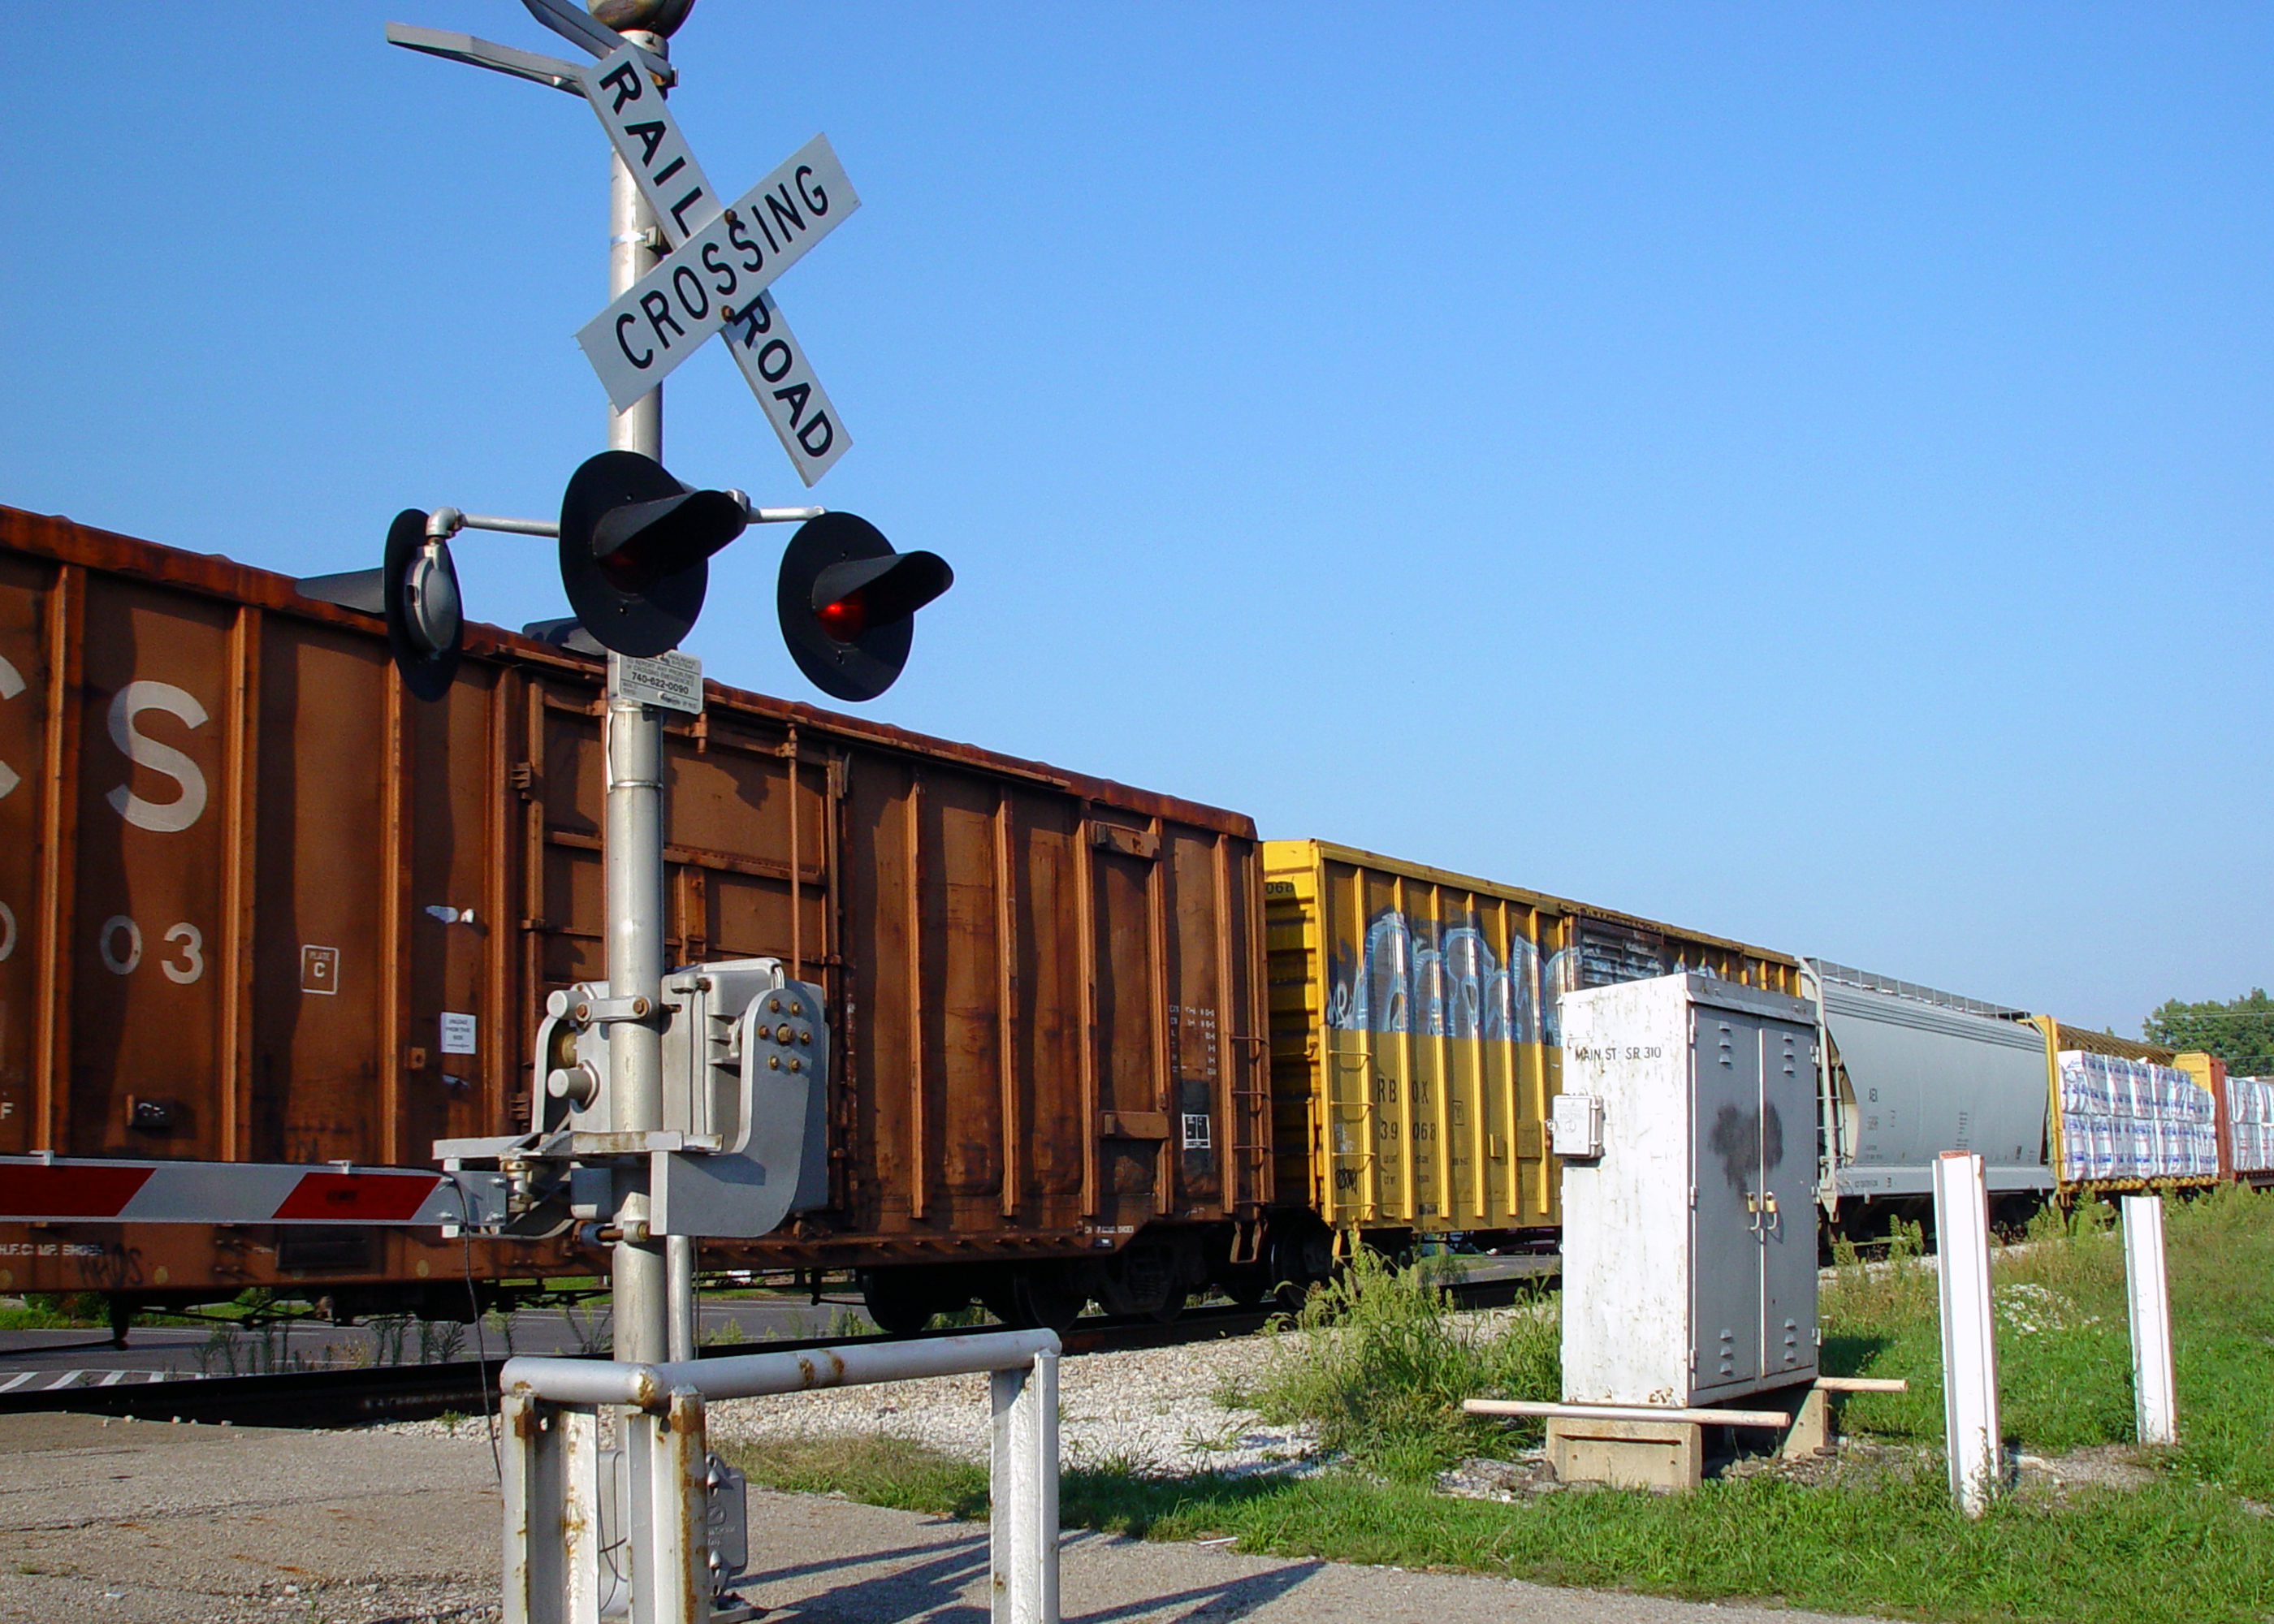 Railroad crossing closure ashland review for Lopp motors dodge city